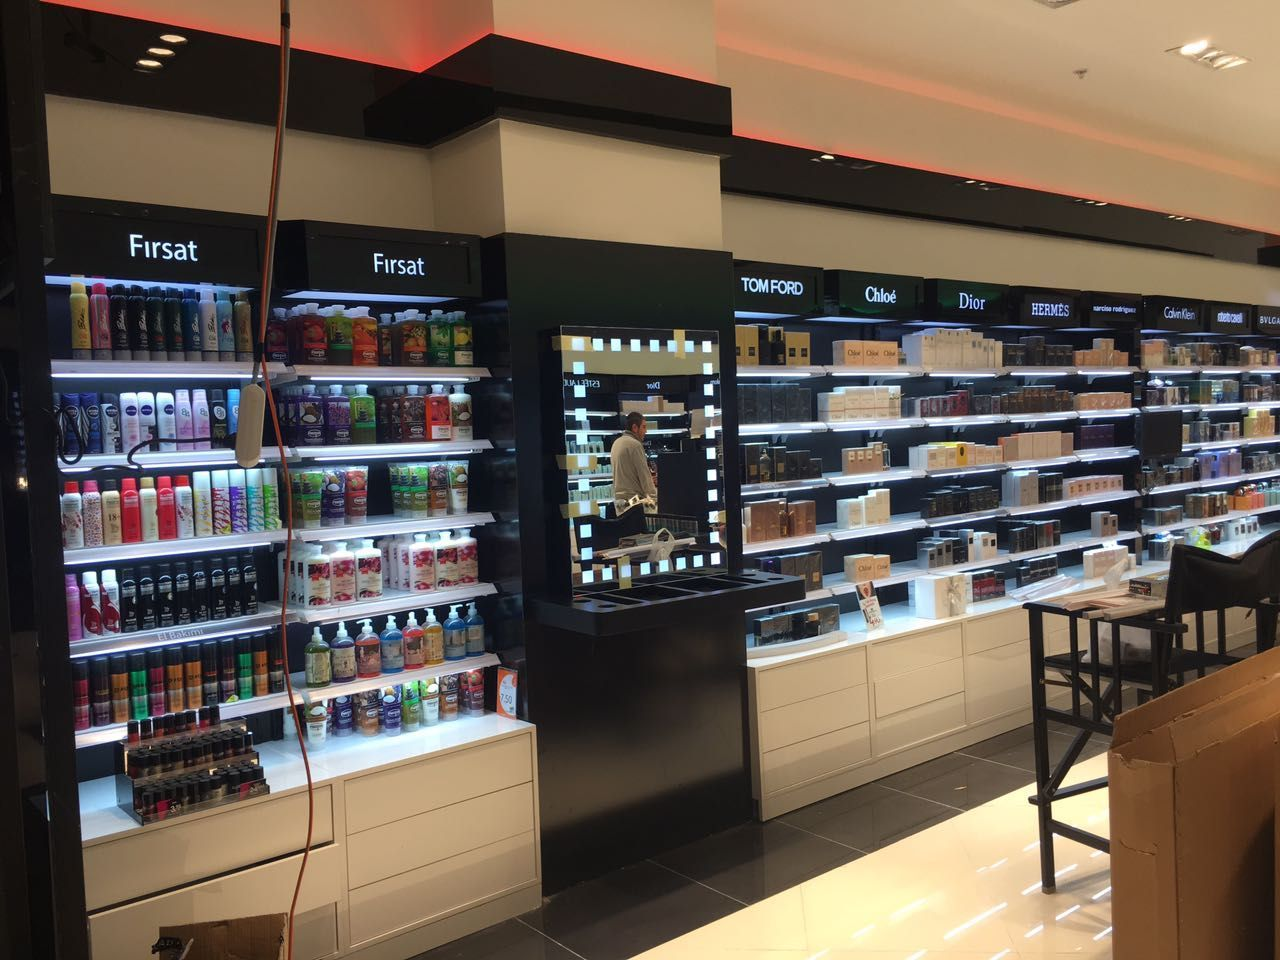 Pin By Abhay Jeet Arora On Retail Display In 2020 Supermarket Design Pharmacy Design Cosmetic Shop